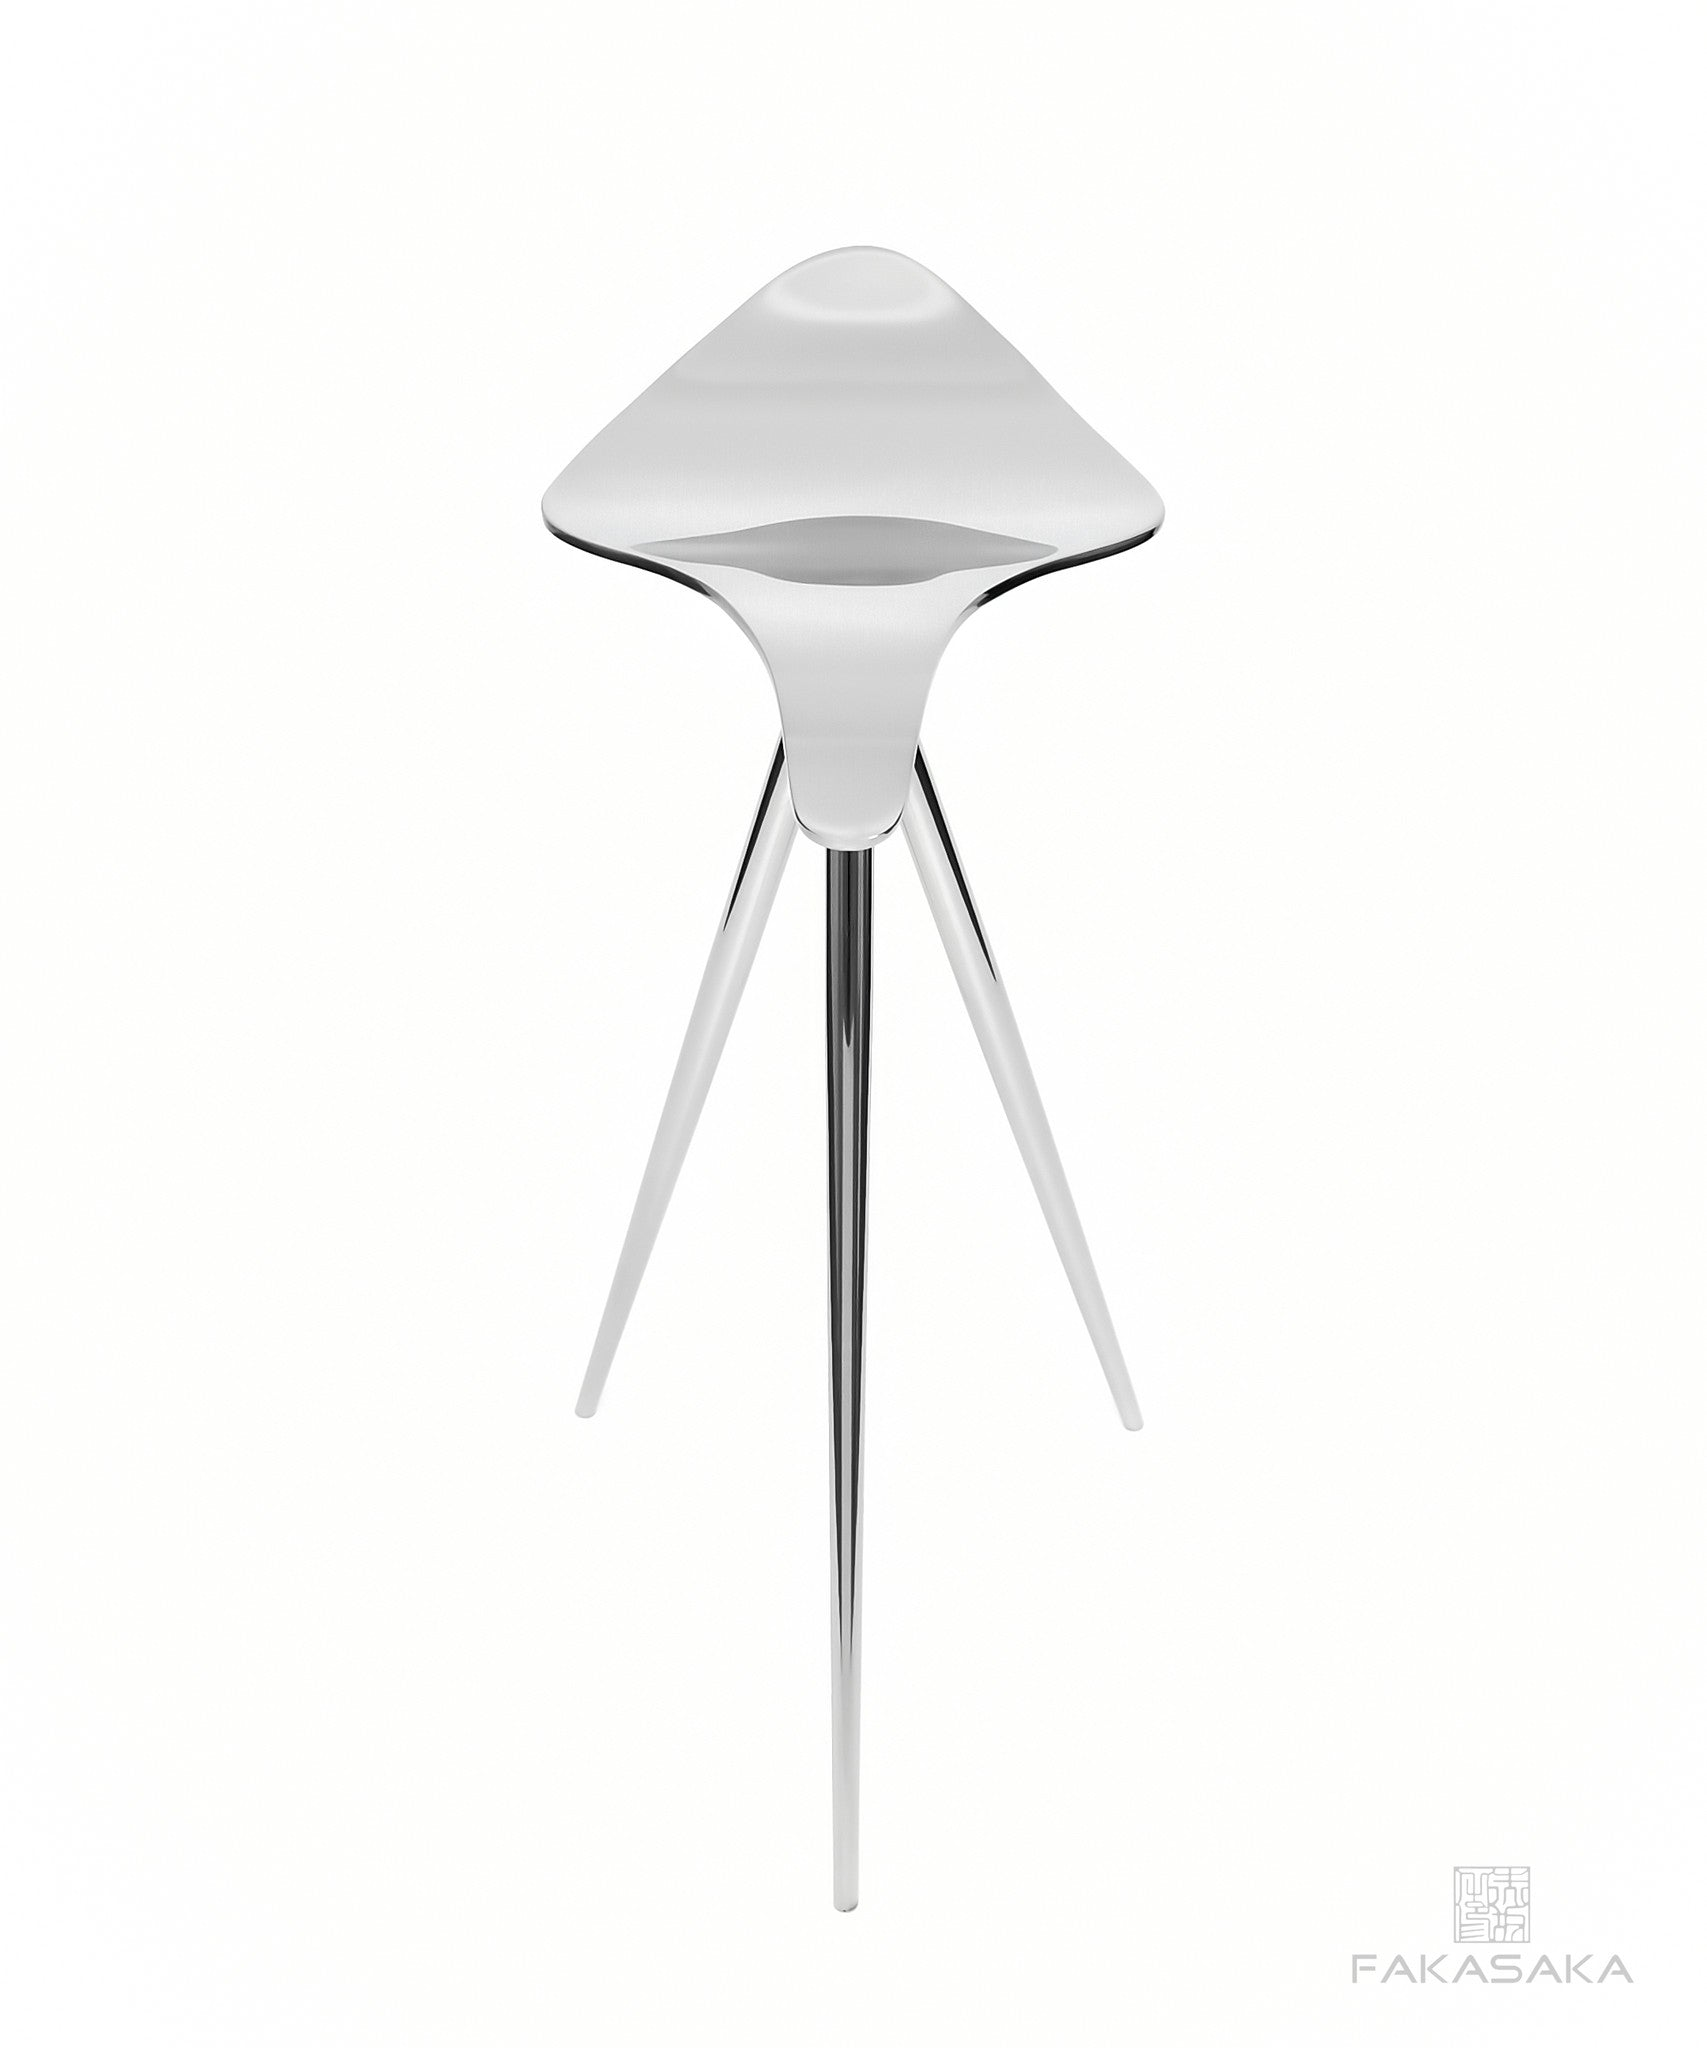 FA3 STOOL<br><br>STAINLESS STEEL